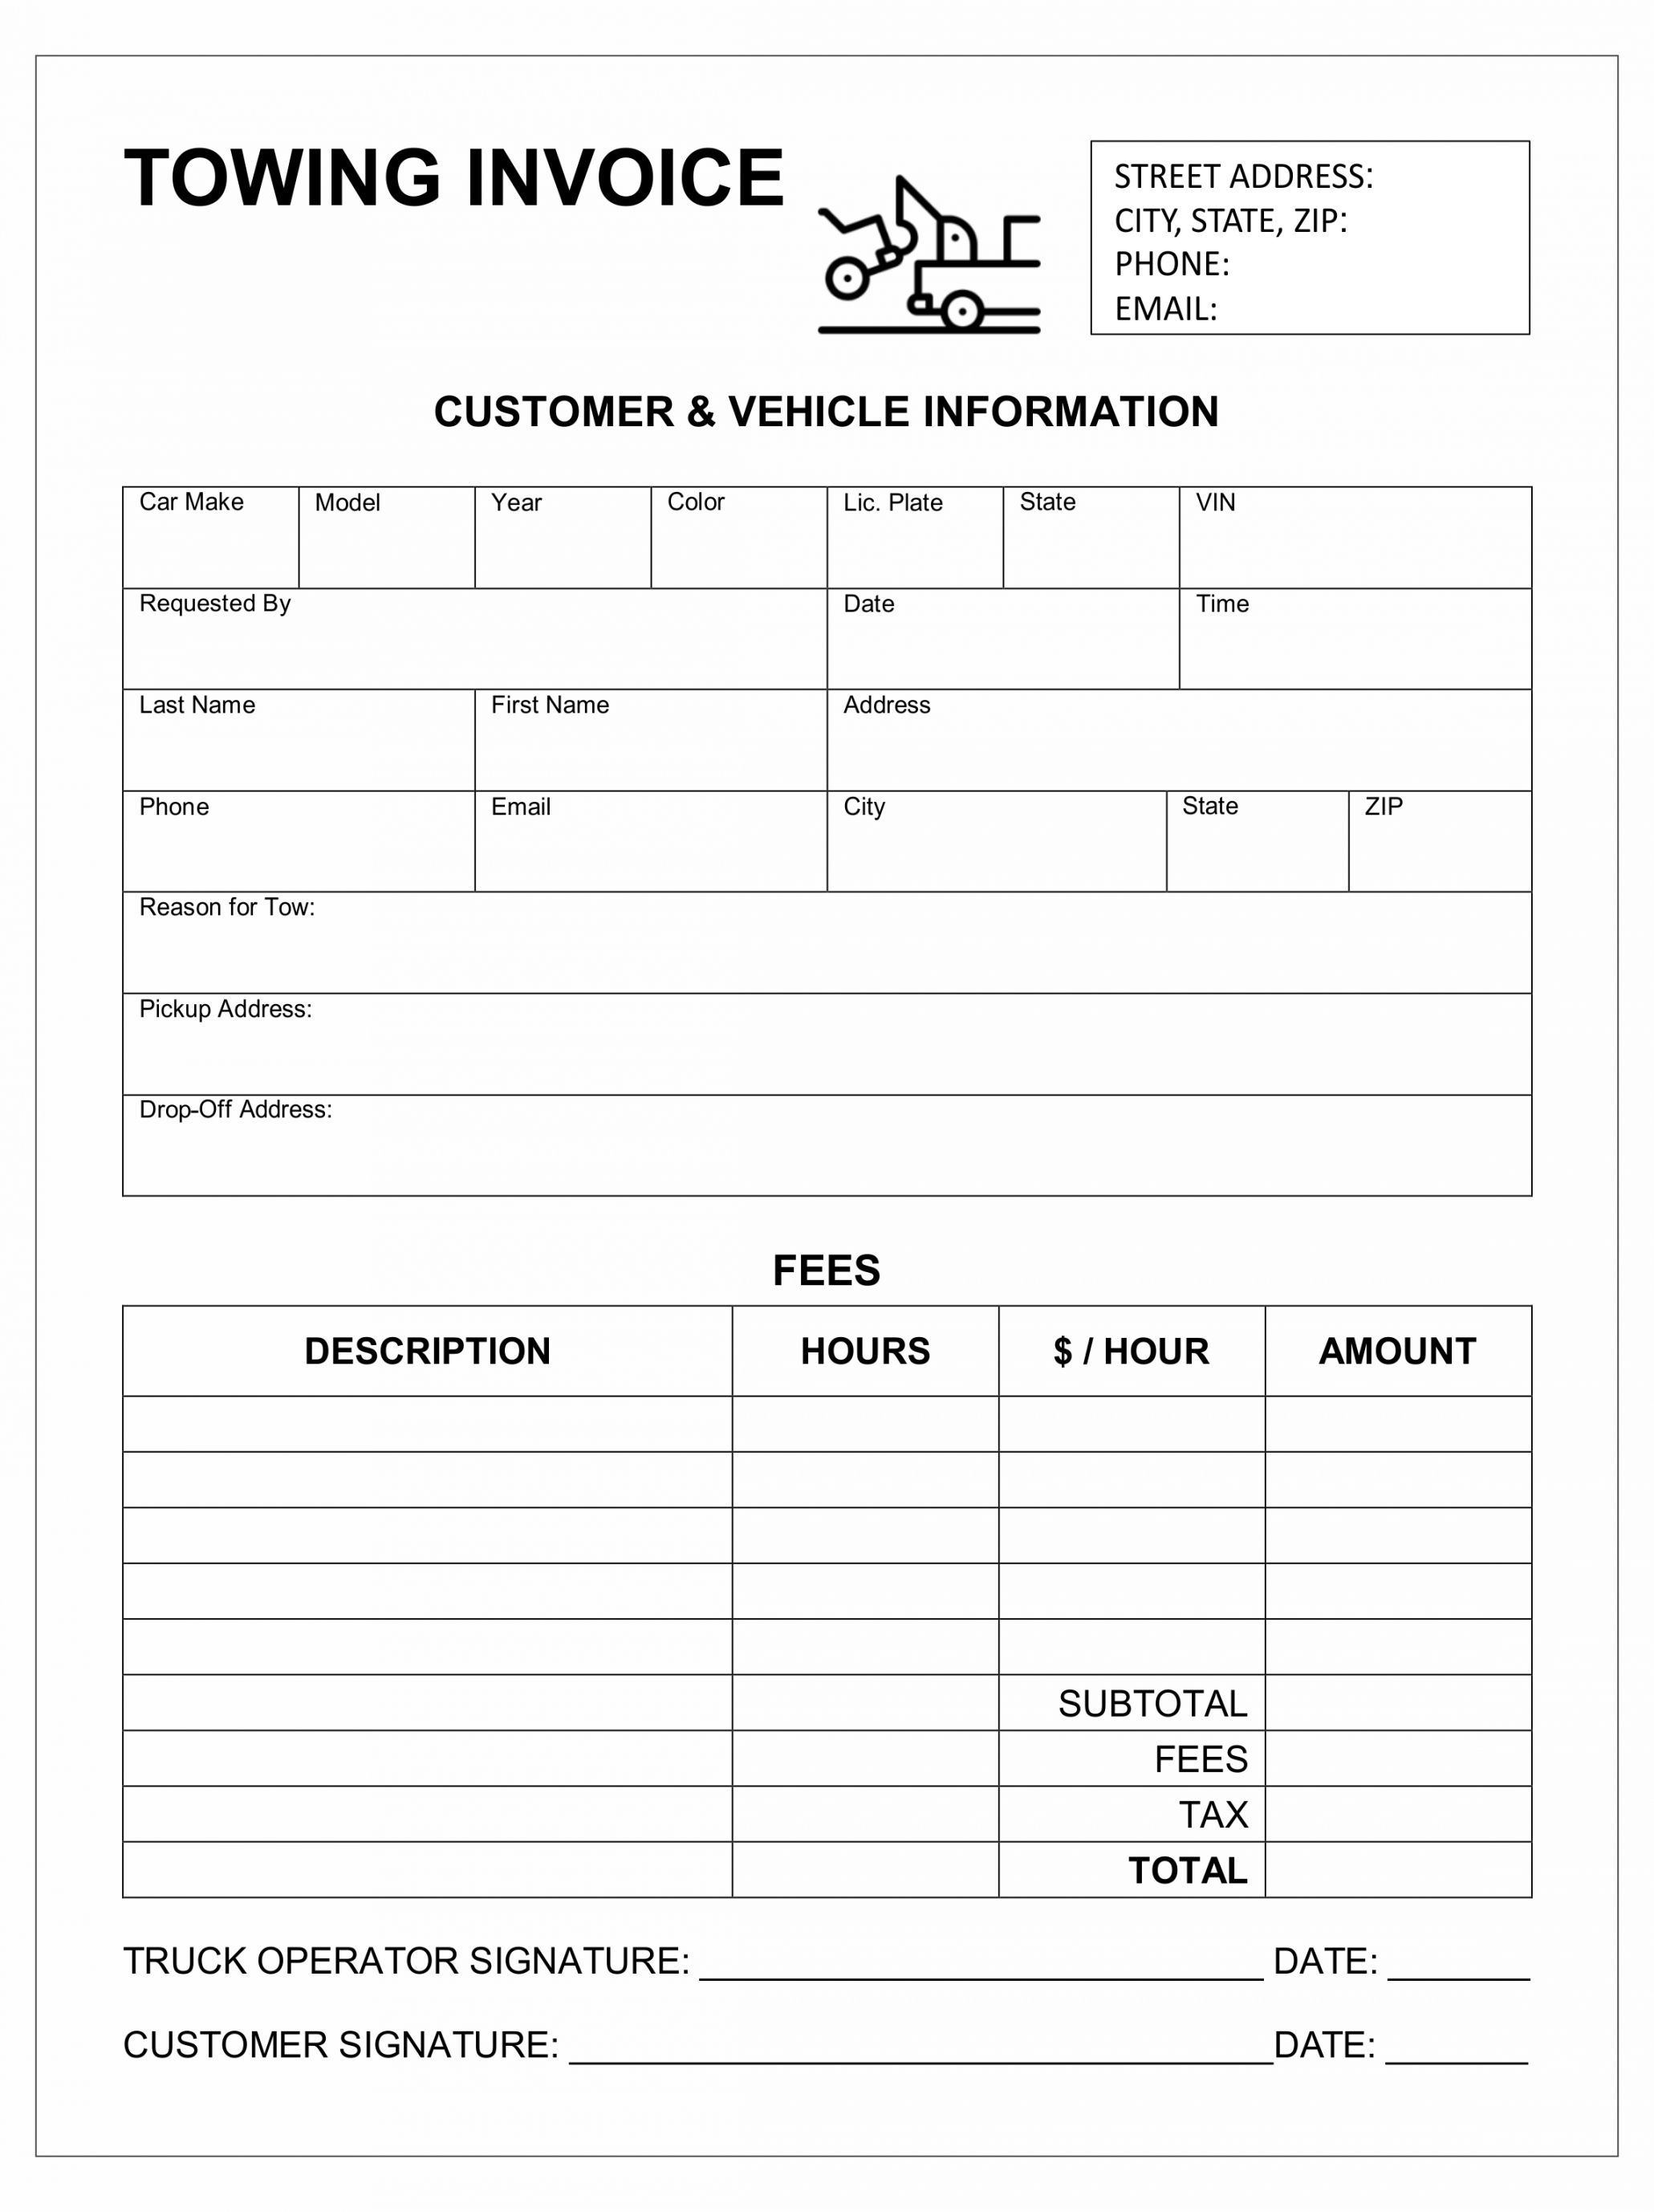 Get Our Printable Car Towing Receipt Template Invoice Template Receipt Template Templates